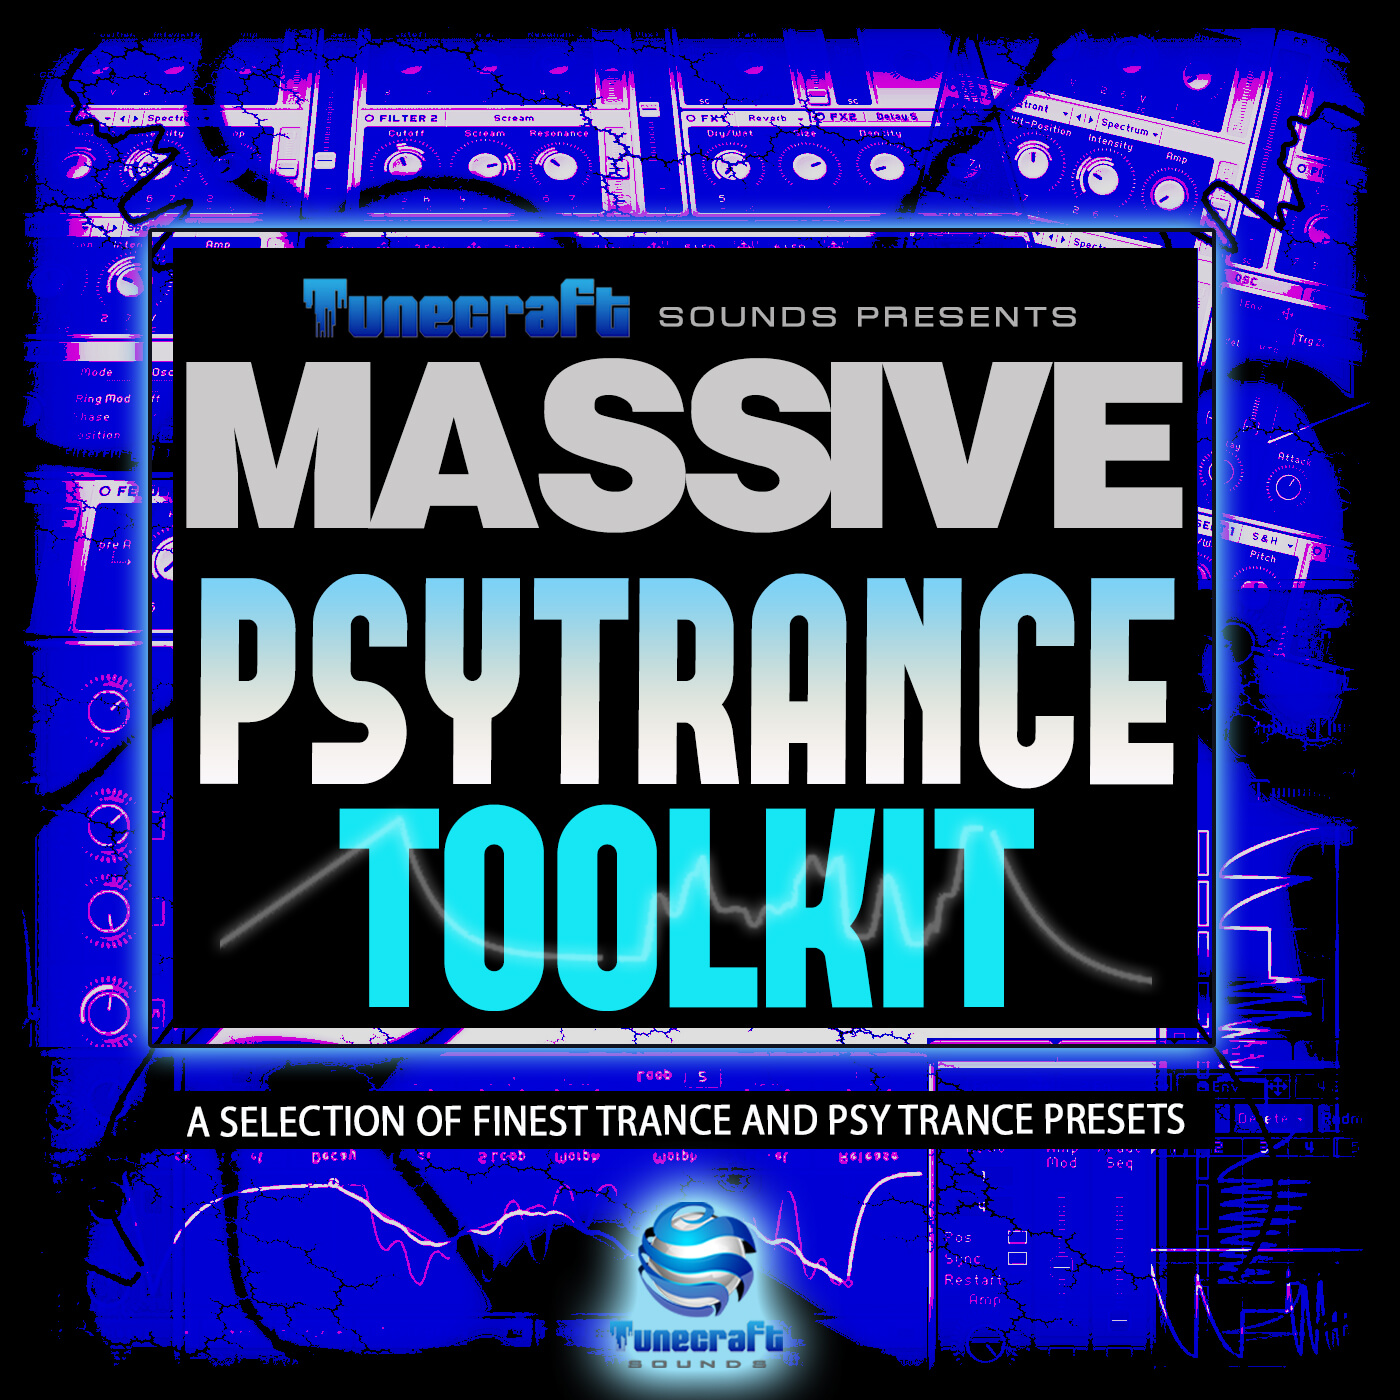 Tunecraft PsyTrance Toolkit